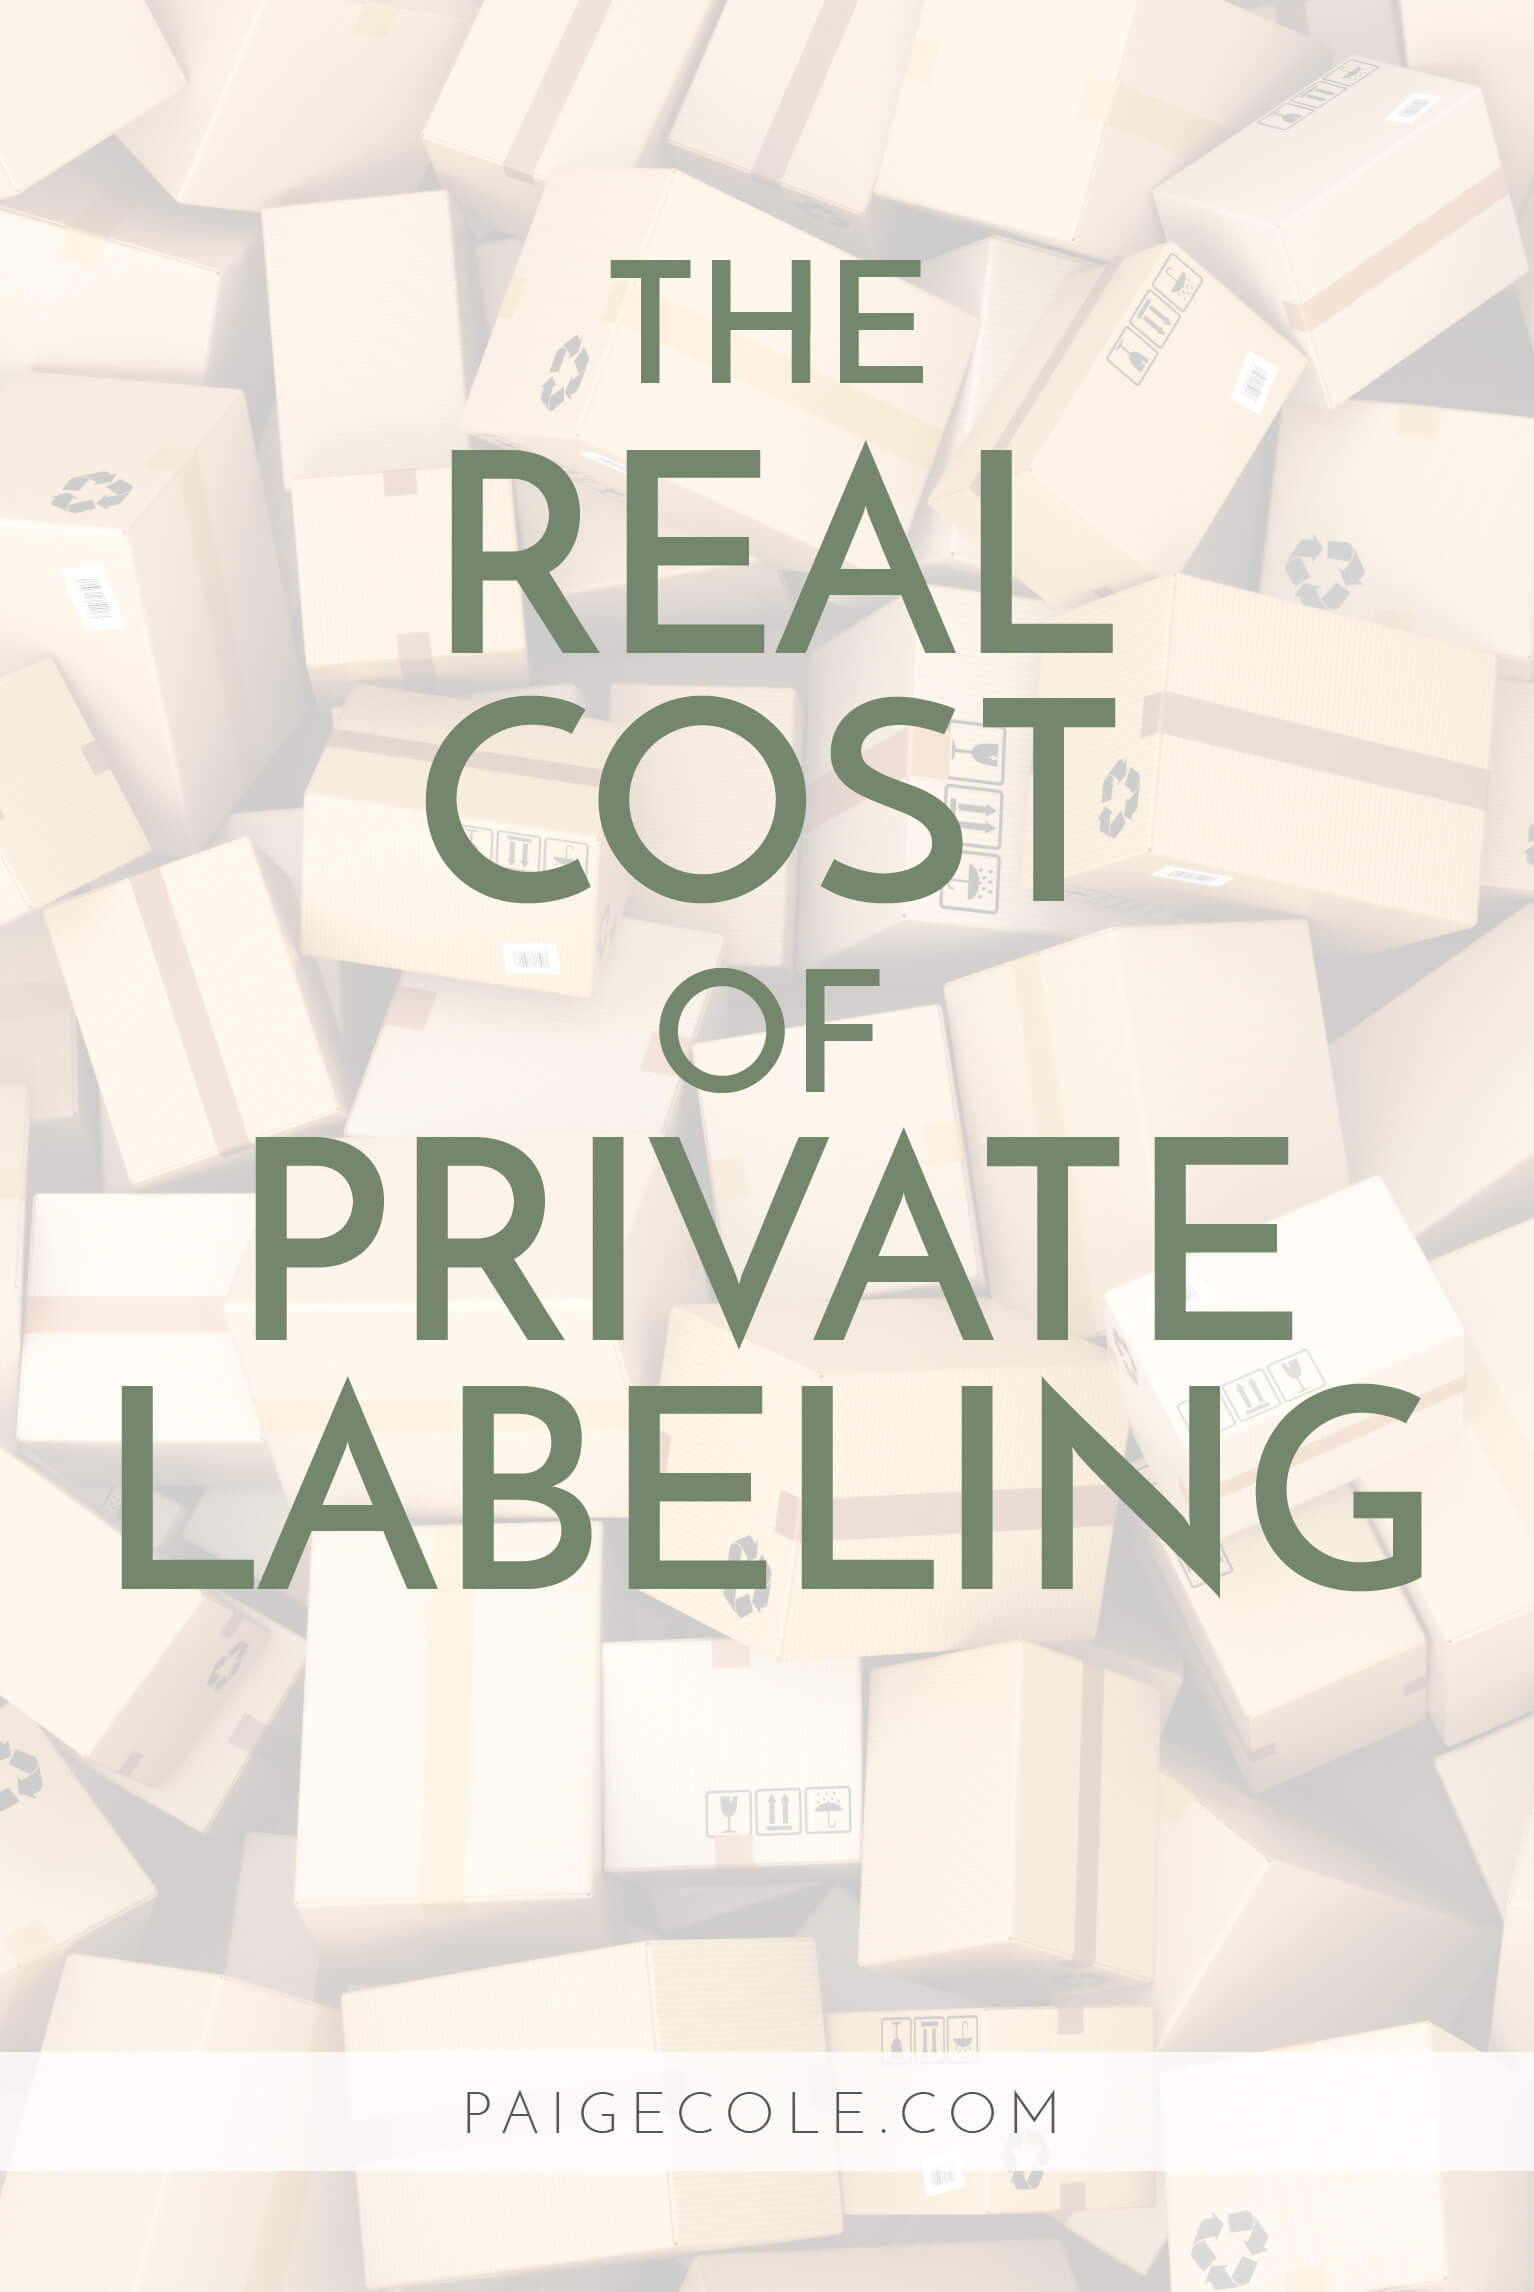 As wonderful as selling on Amazon is, no business venture has 0 costs, so this is the lowdown on the real cost of private labeling.